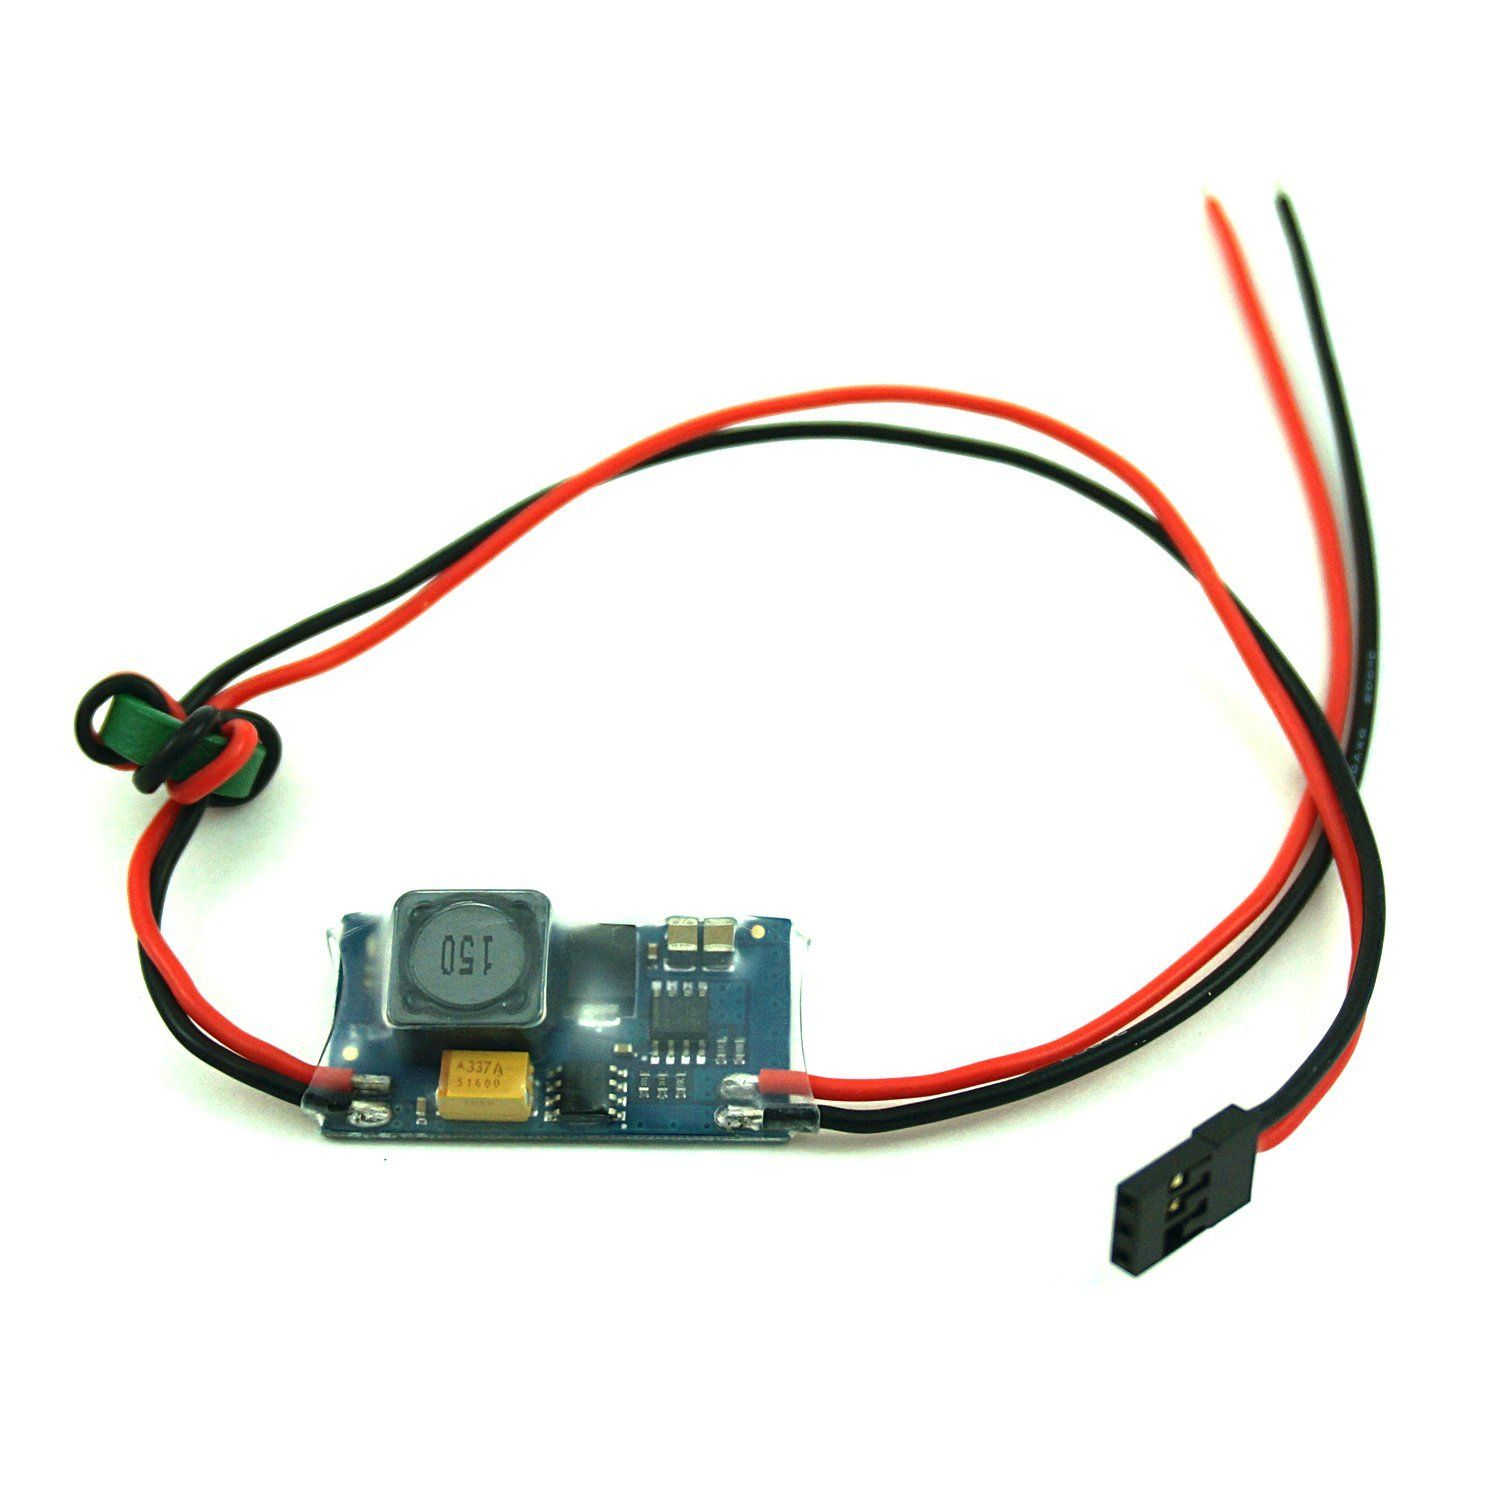 small resolution of  fpvfocus bec sbec ubec 5v 5a 5 volt 2s 8s lipo switching regulator for fpv equipment and systems